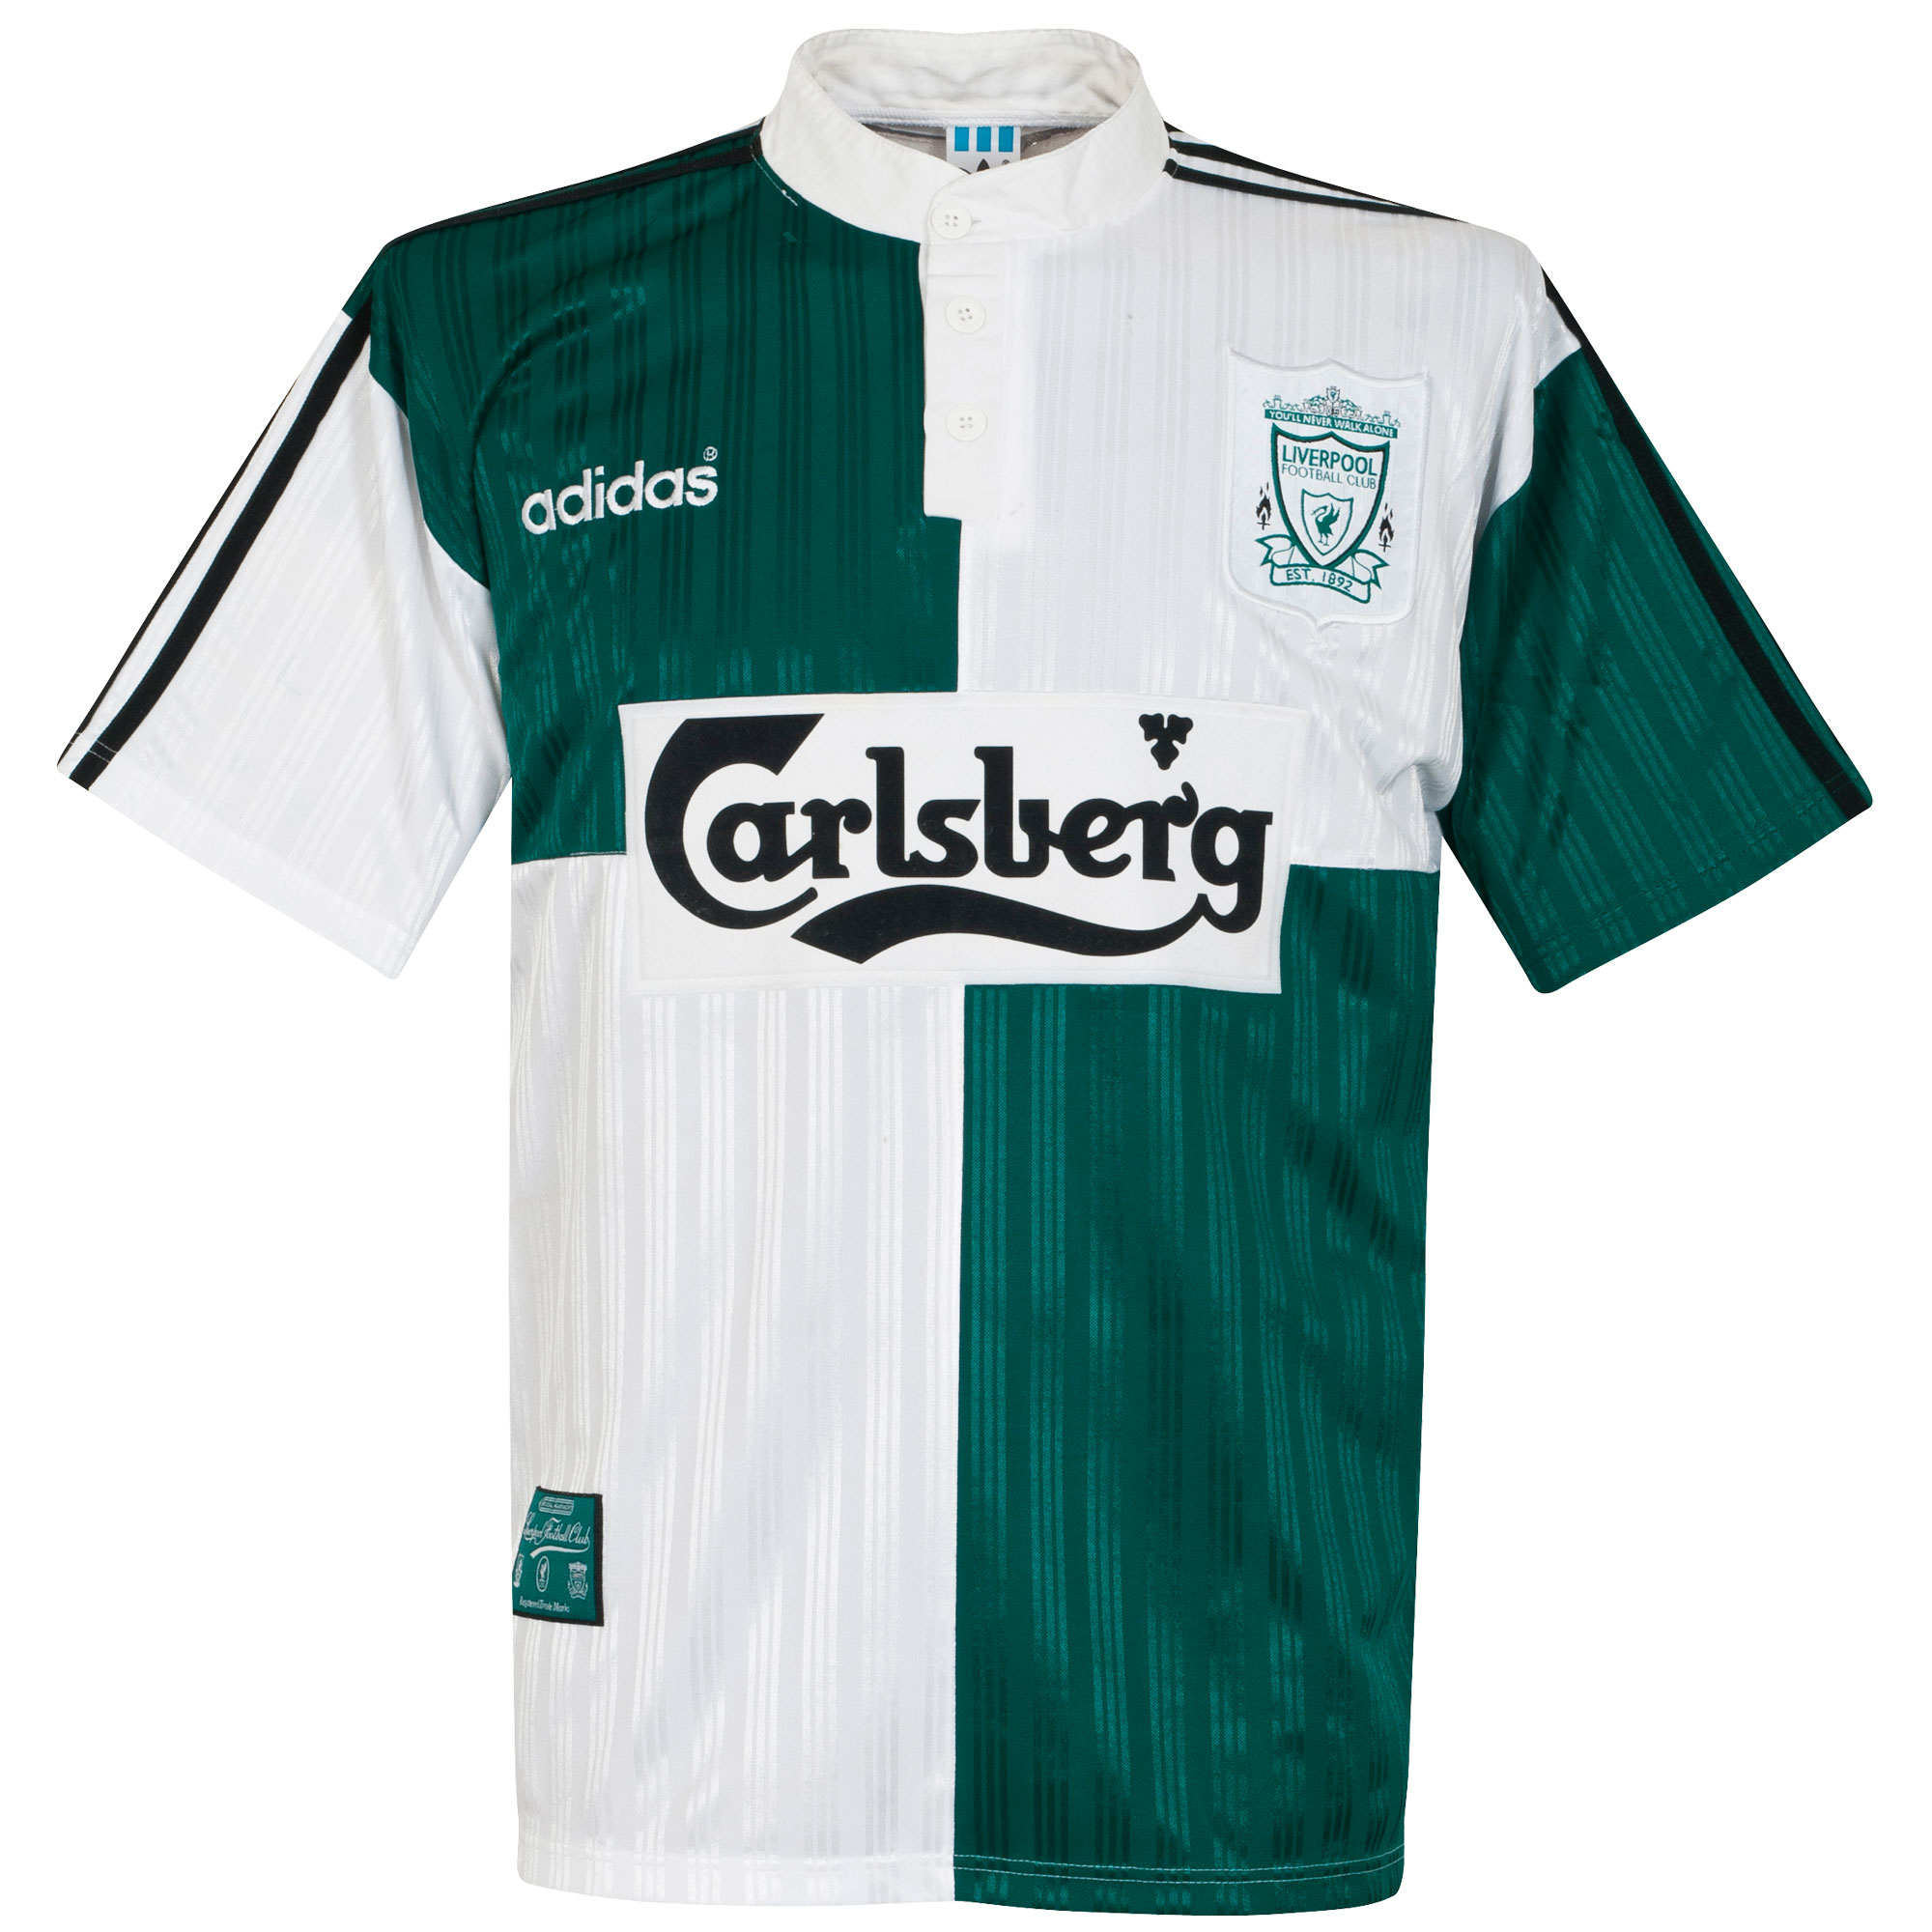 adidas Liverpool 1995-1996 Away Shirt - USED Condition (Great) - Size X